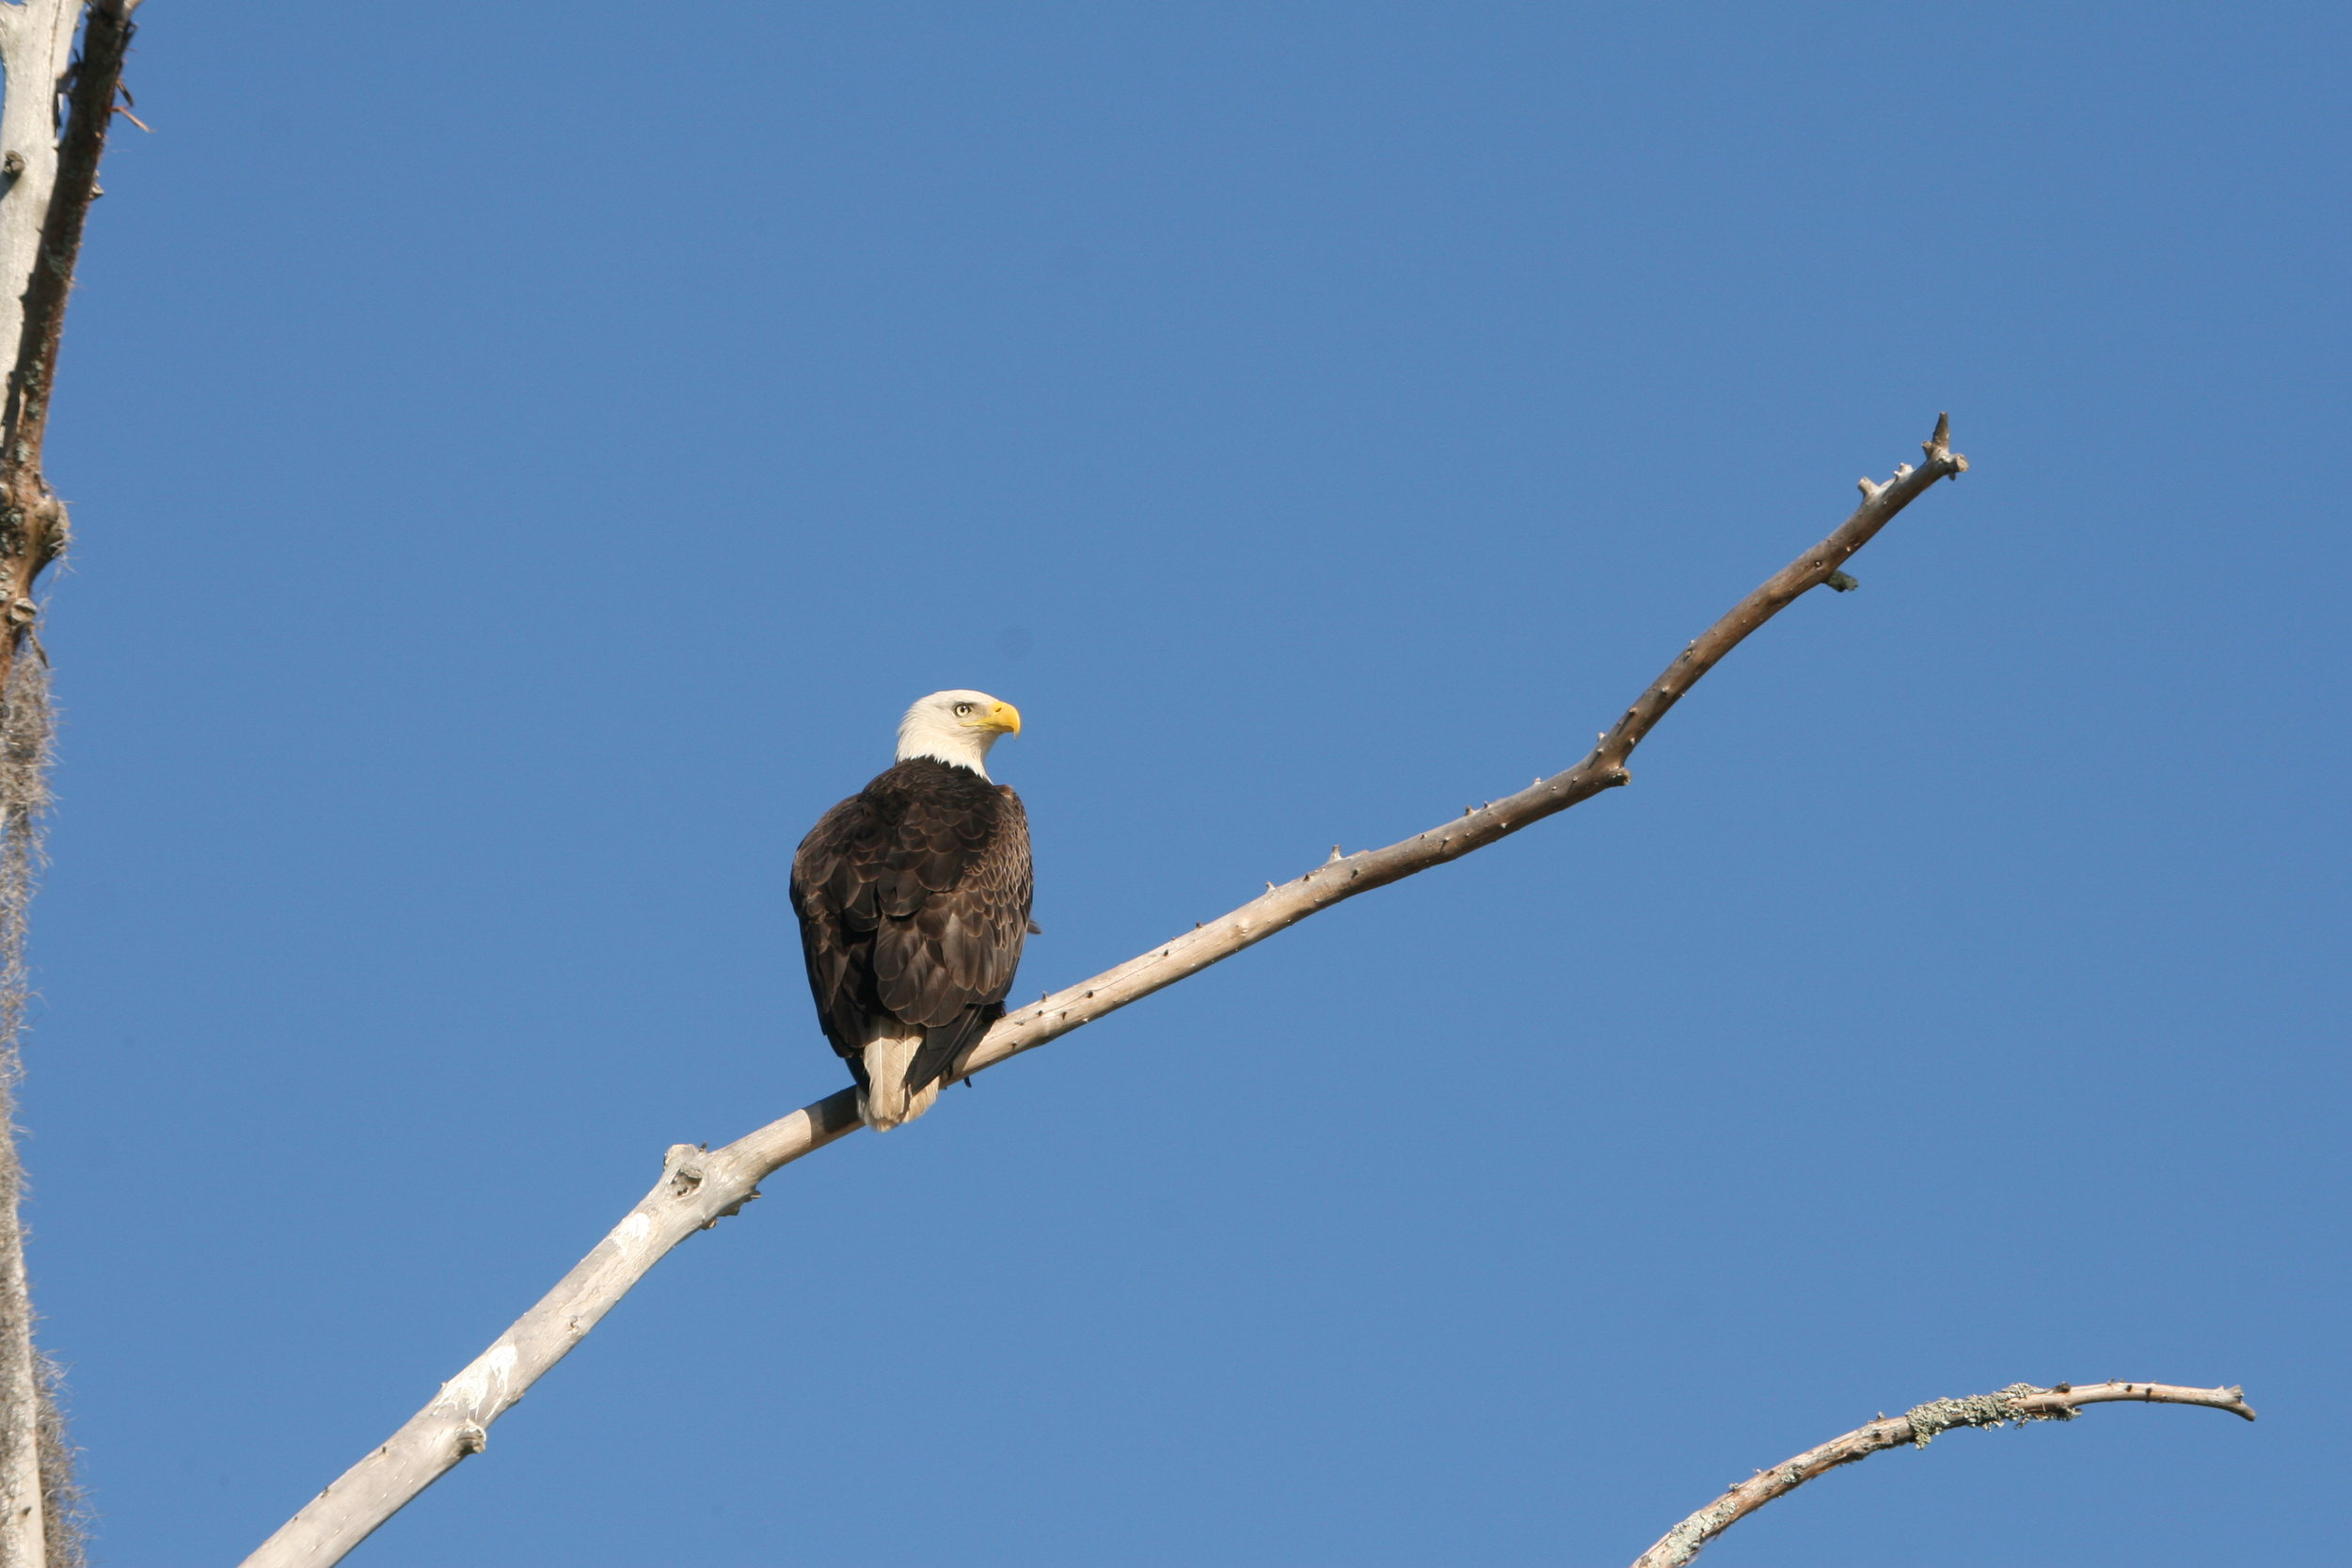 An adult bald eagle sits on a snag overlooking the Combahee River. Juveniles have dark heads and tail feathers and develop their distinctive white plumage around age five. (Photo: Liz Duermit)